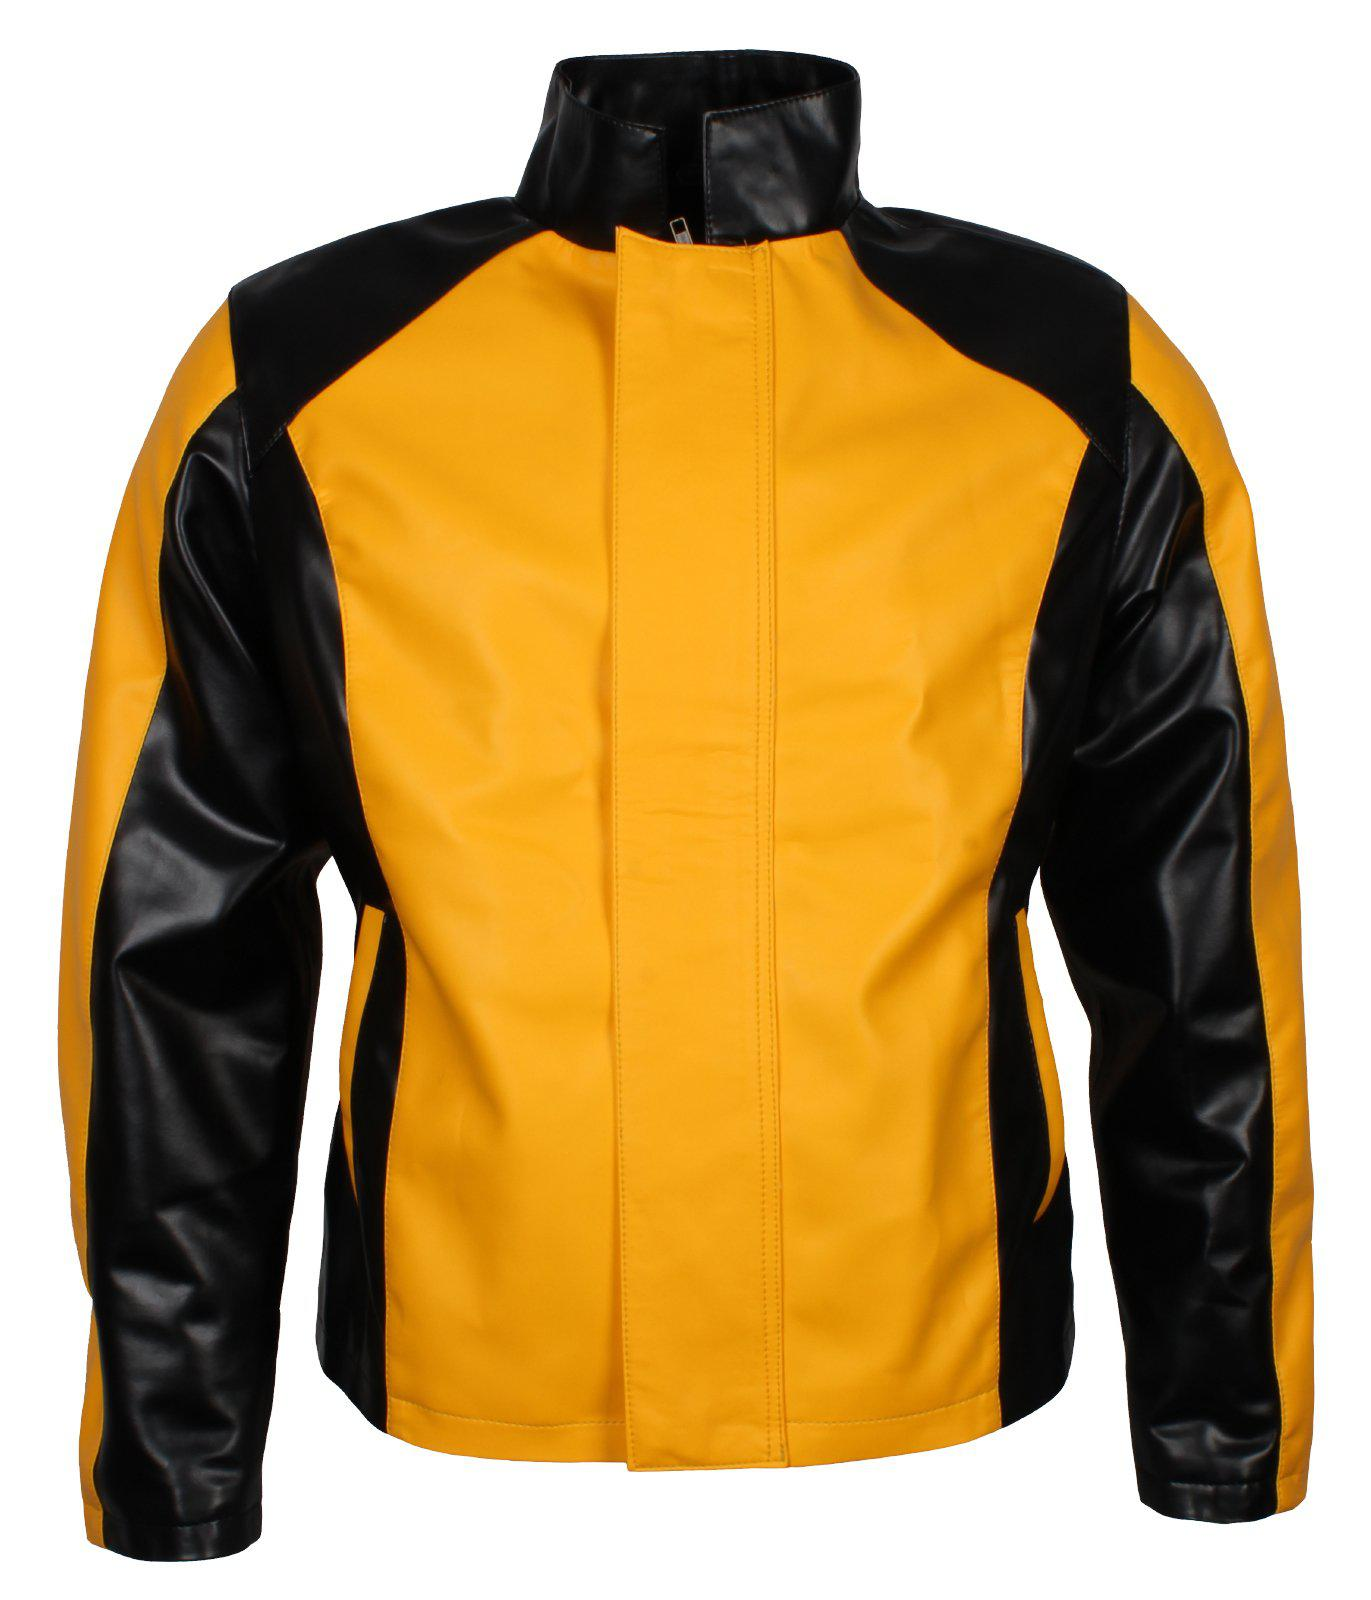 Infamous Cole MacGrath Black and Yellow Men's PU Faux Leather Moto Jacket